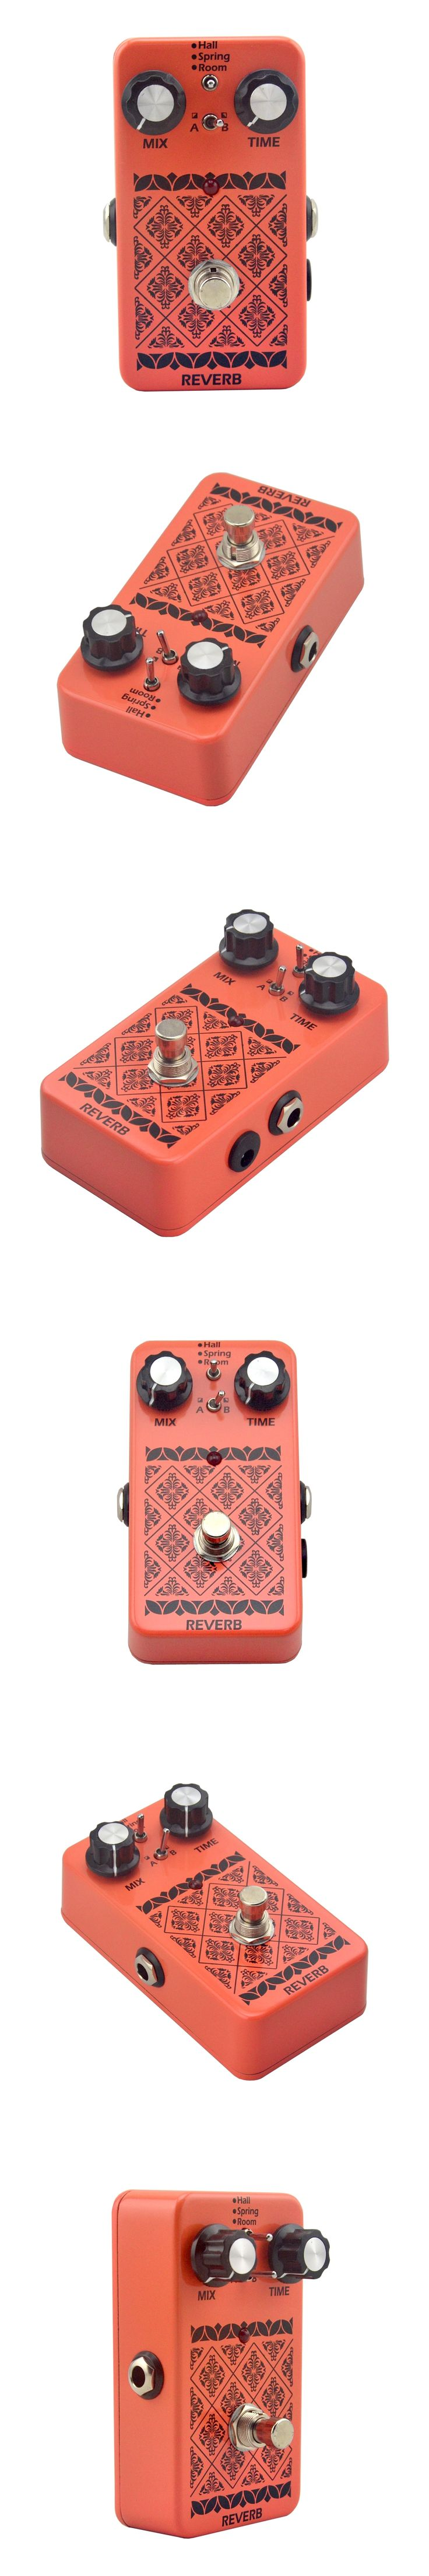 NEW reverb effect Stereo True Bypass Electric Guitar Pedal for Guitar Parts & Accessories reverb